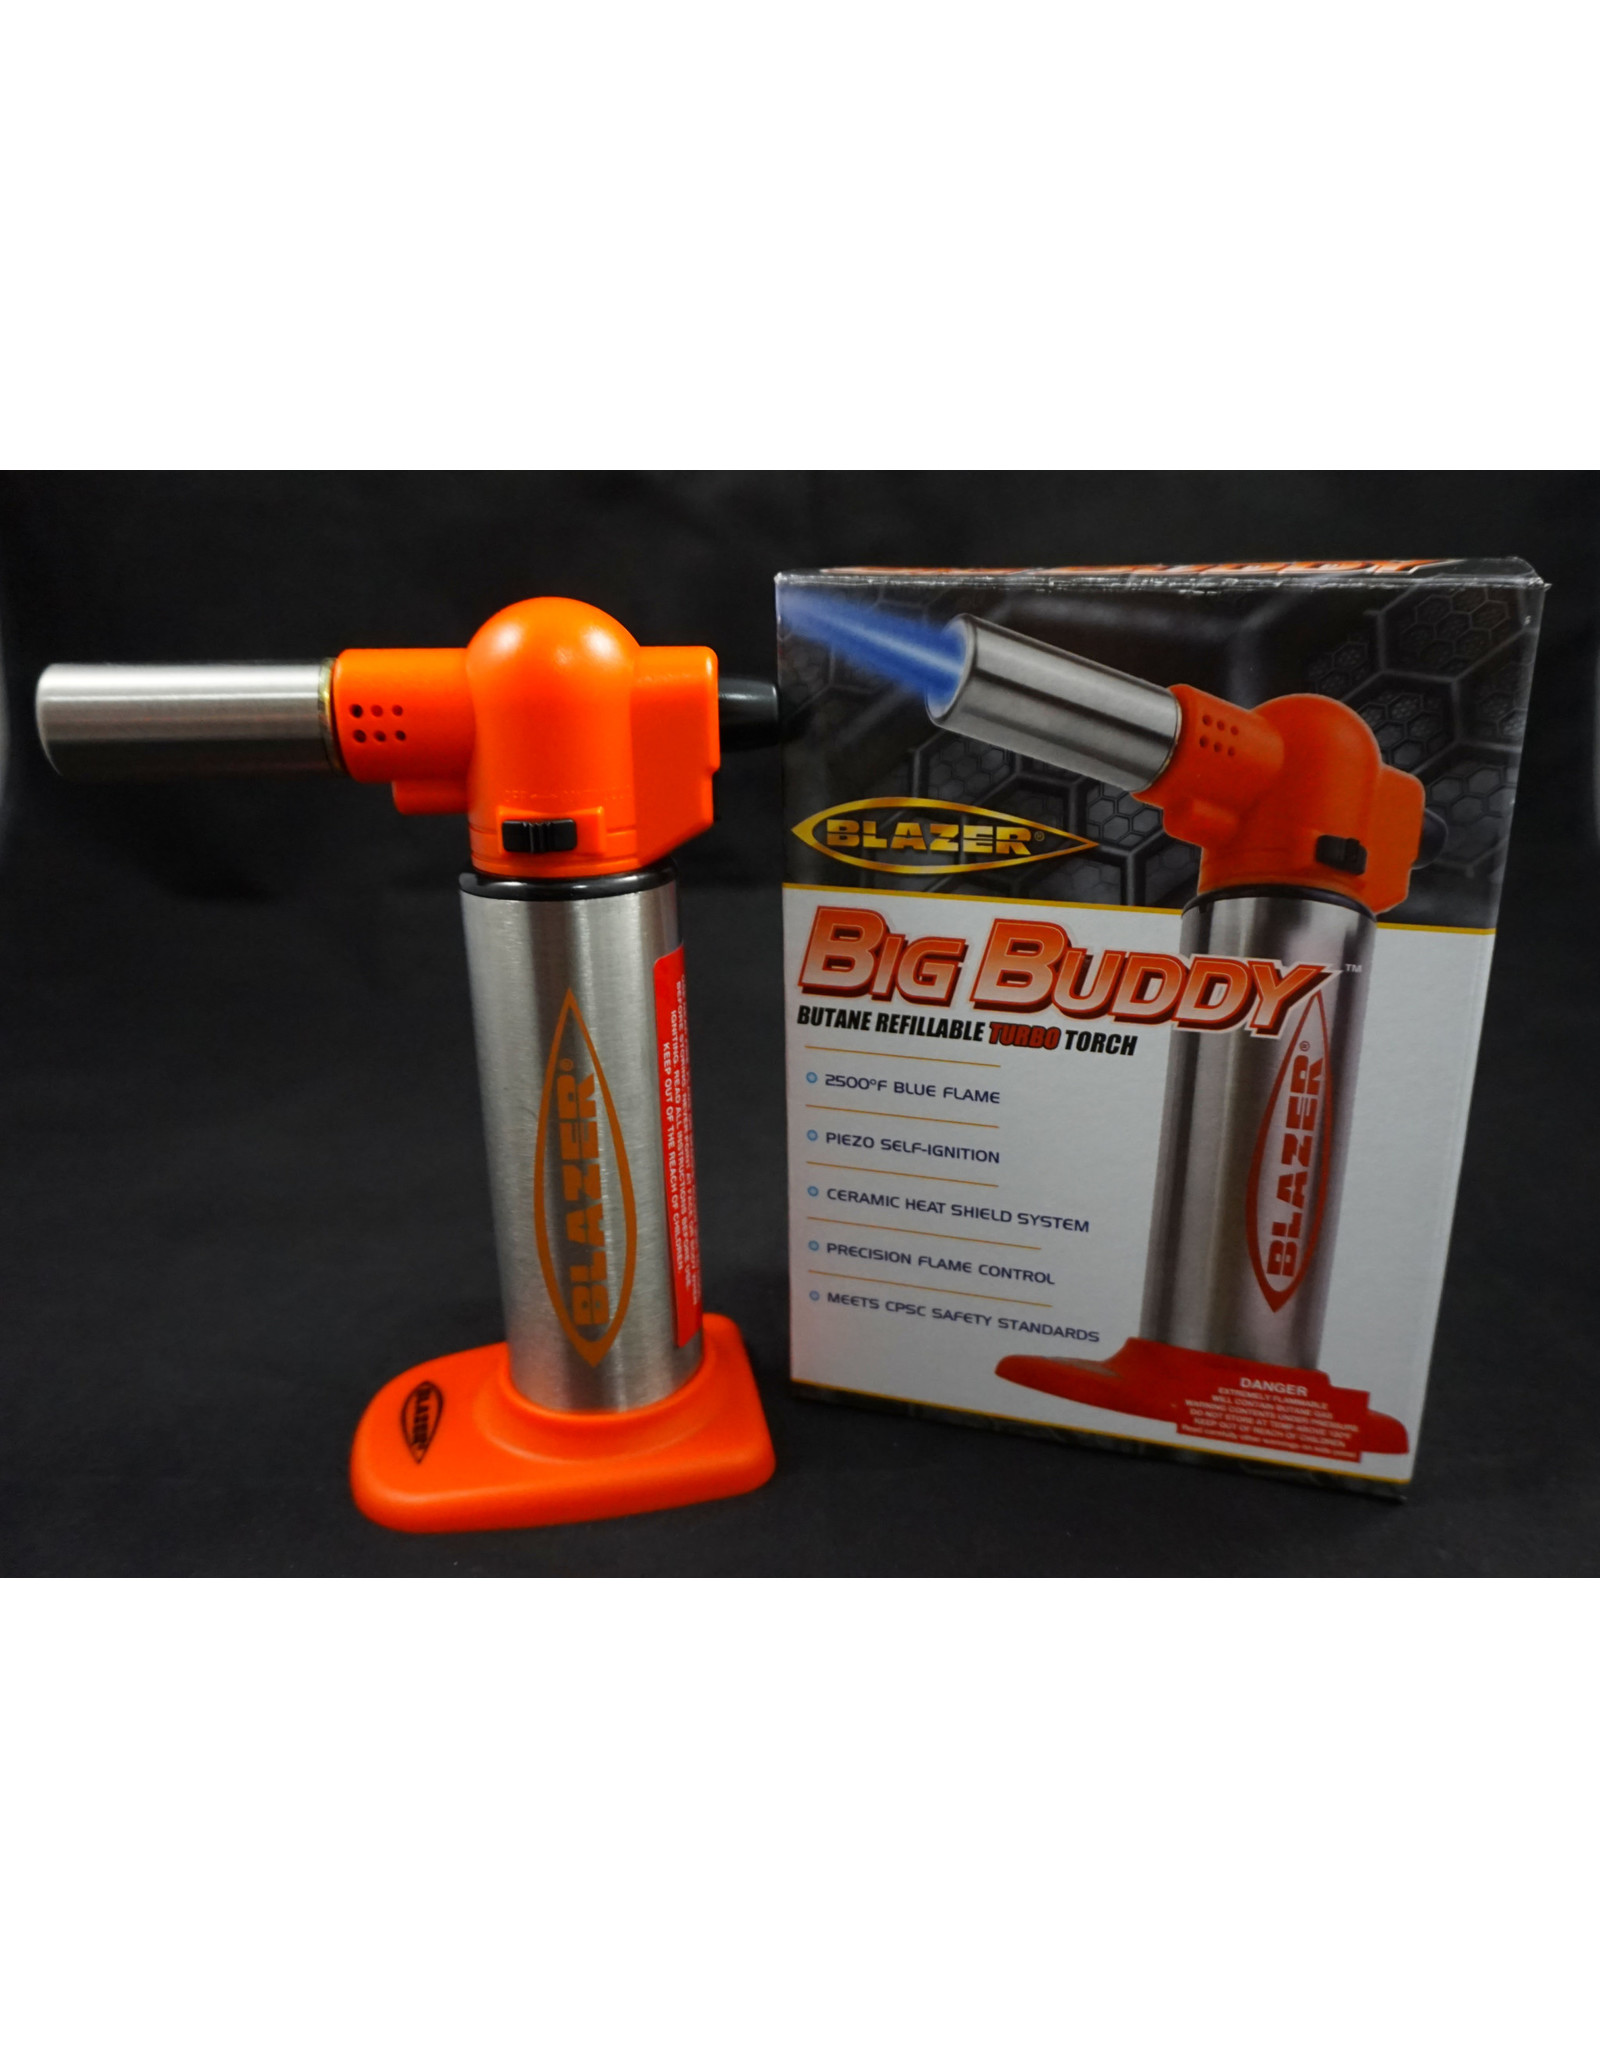 Blazer Blazer Big Buddy Torch – 7″ Orange